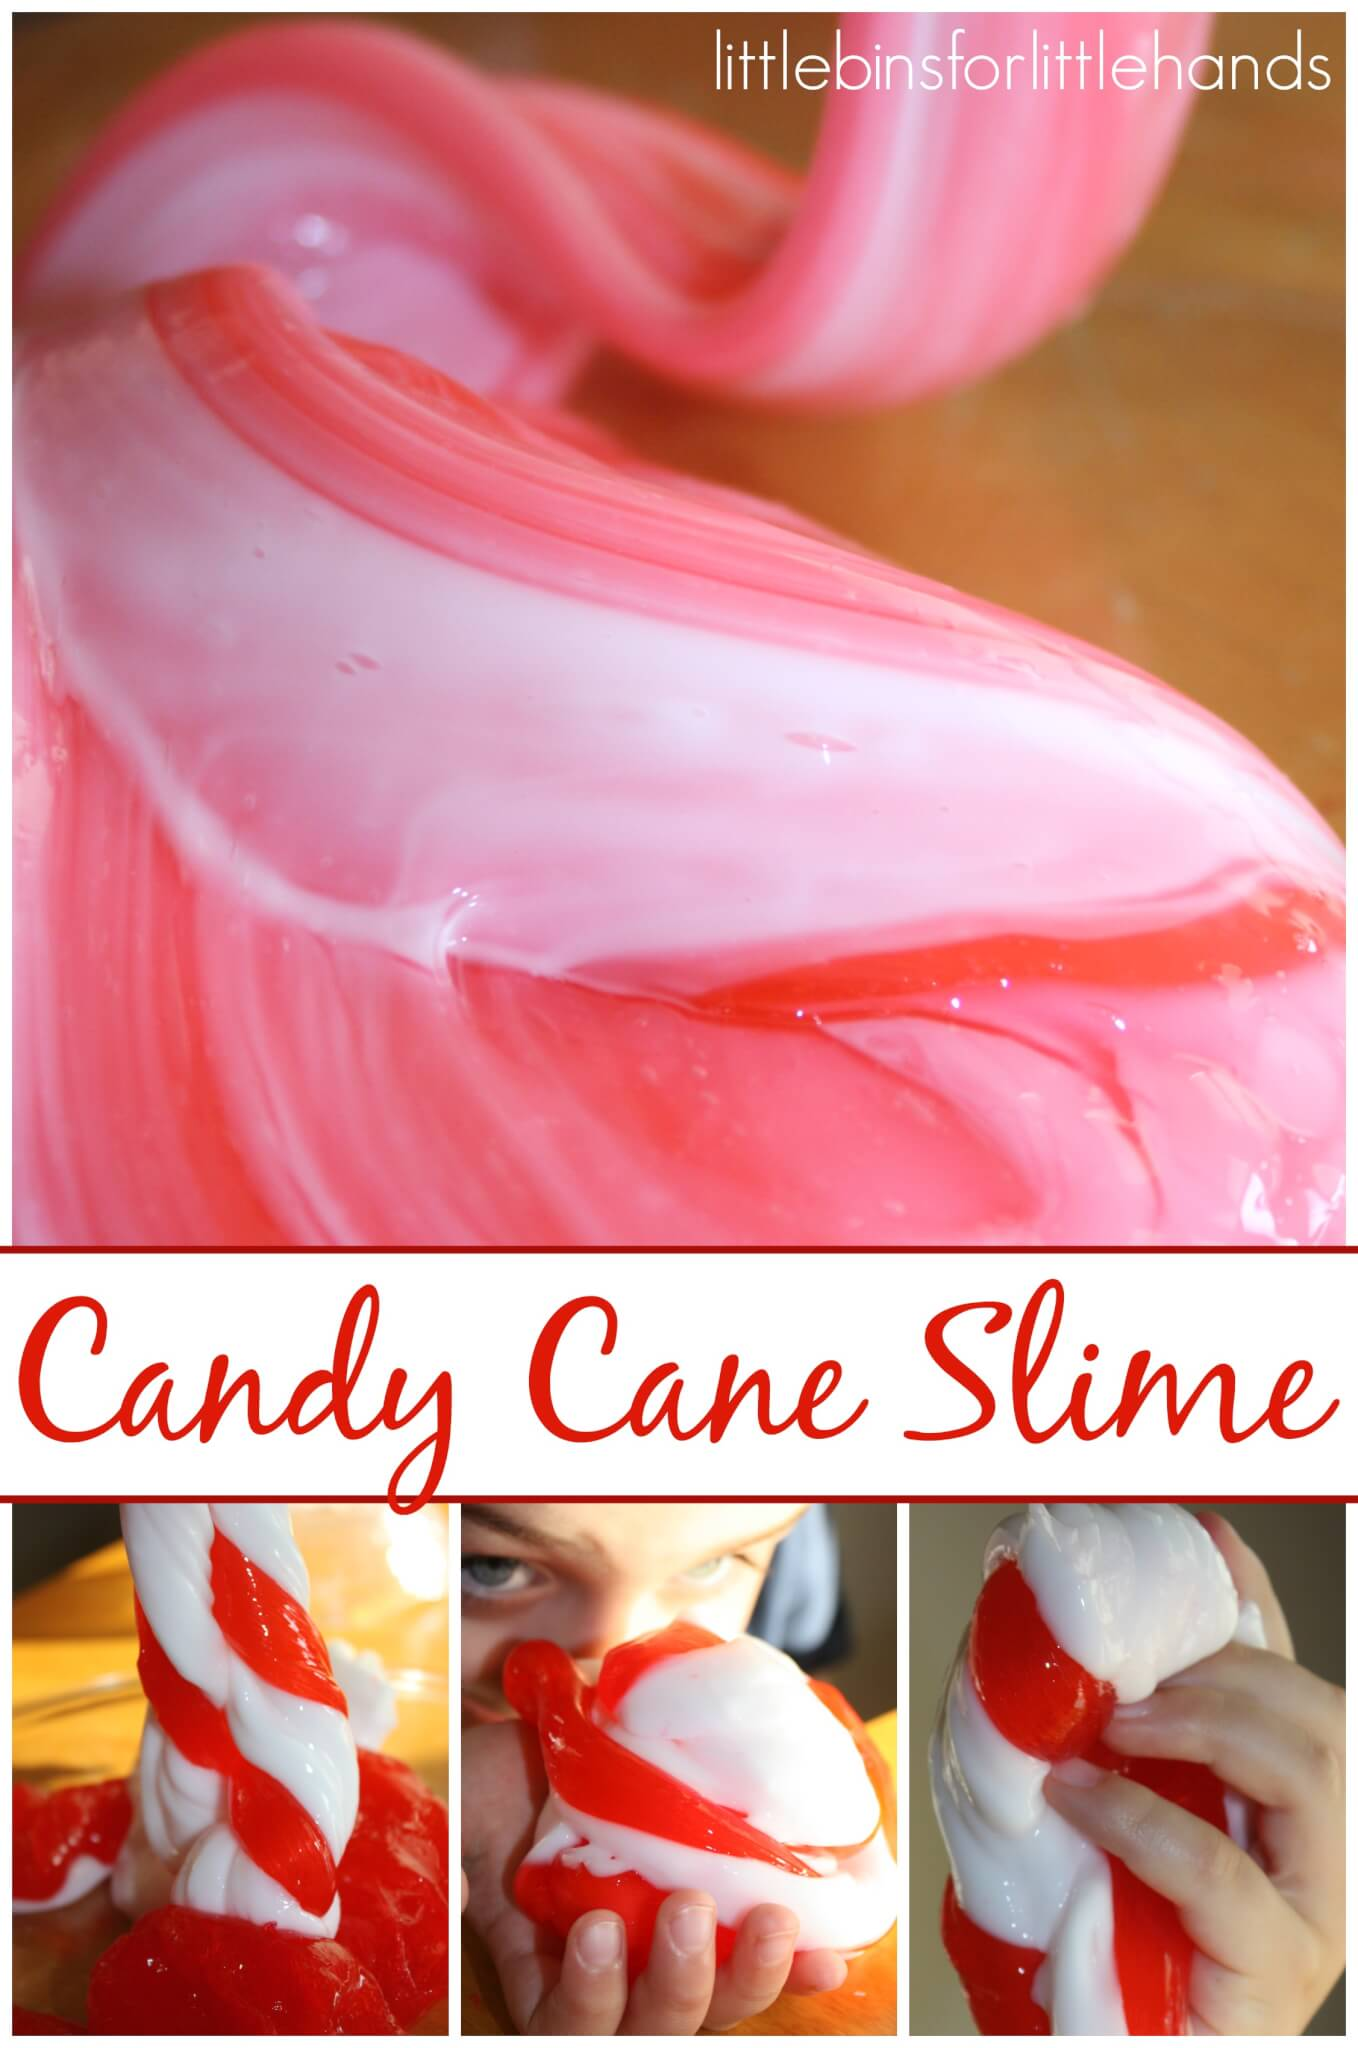 Candy Cane Slime Recipe on Easy Science Fair Project Ideas